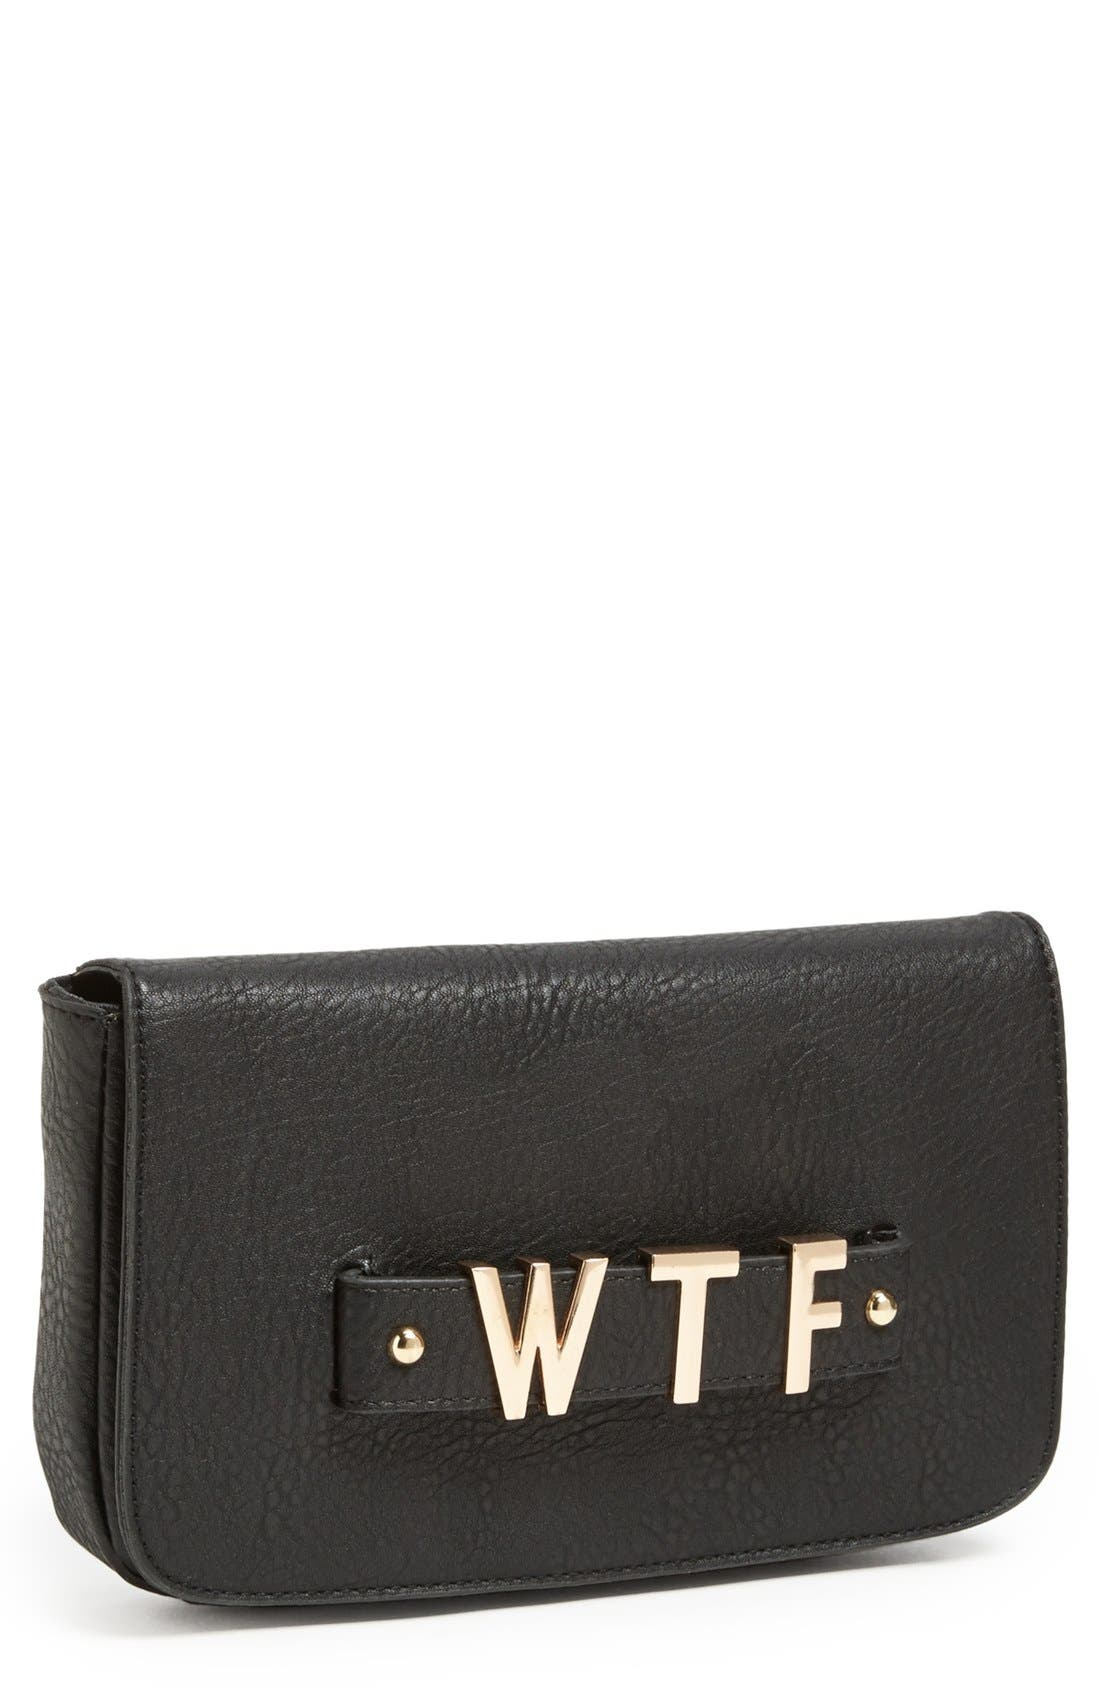 Alternate Image 1 Selected - Street Level Faux Leather Clutch